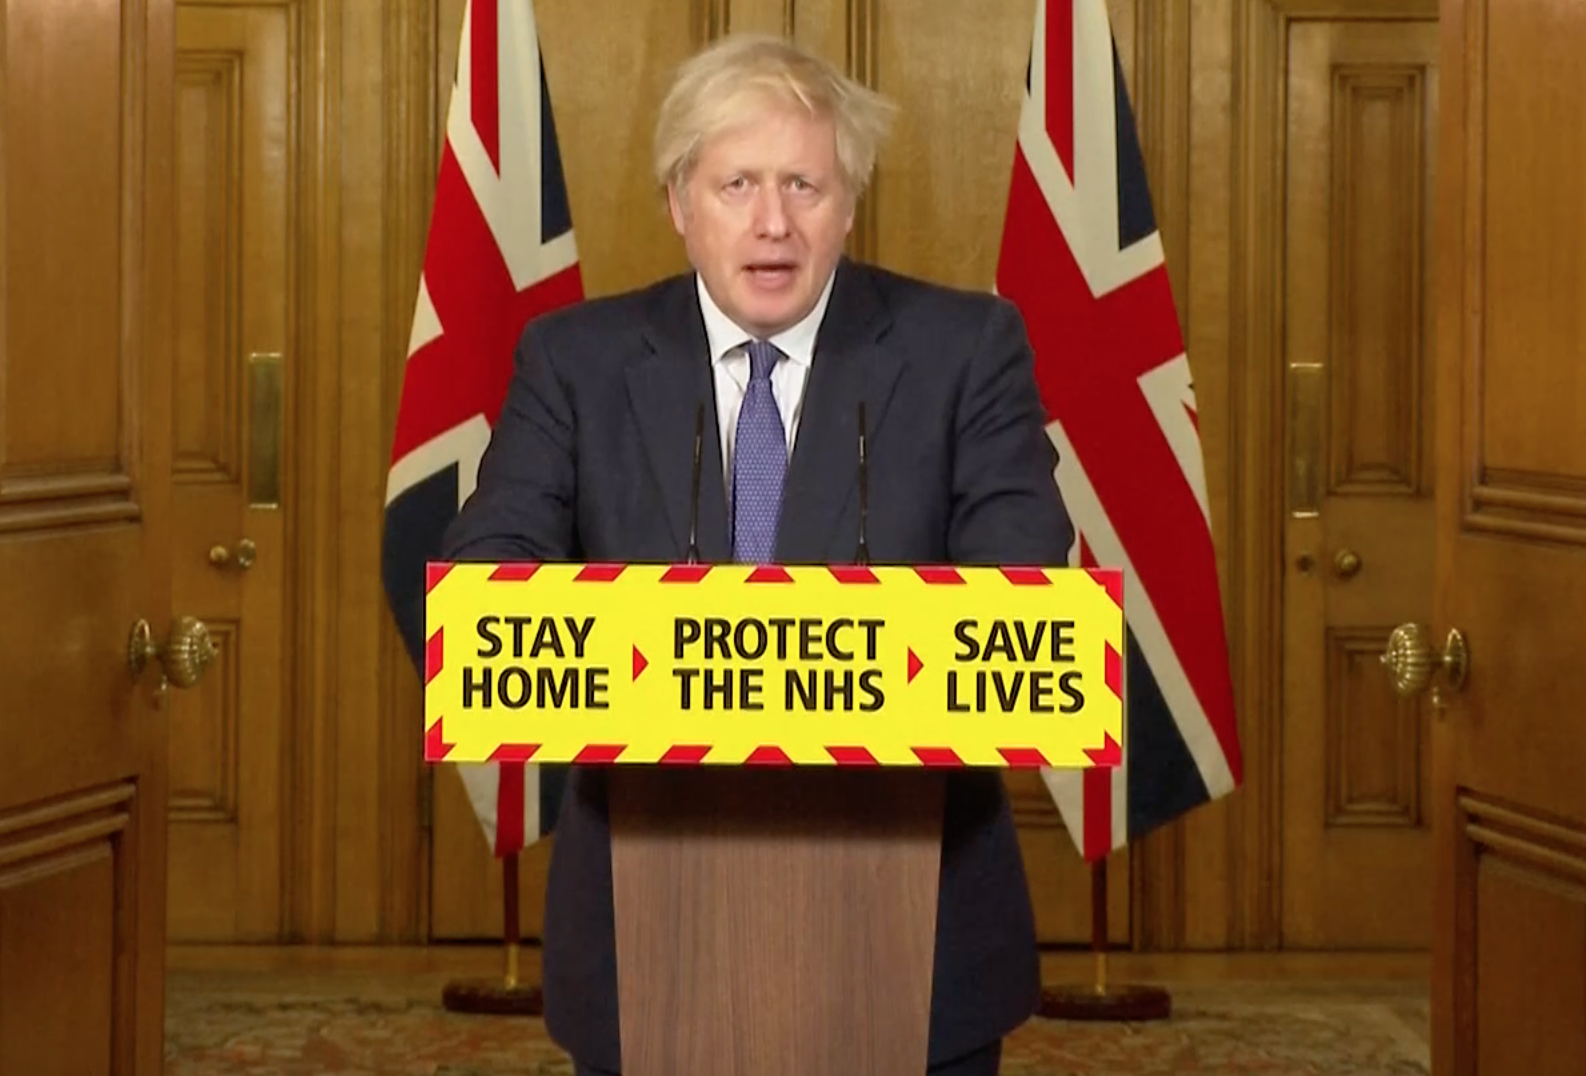 1 in 20 now vaccinated across UK, says Boris Johnson as 3.2m get jab